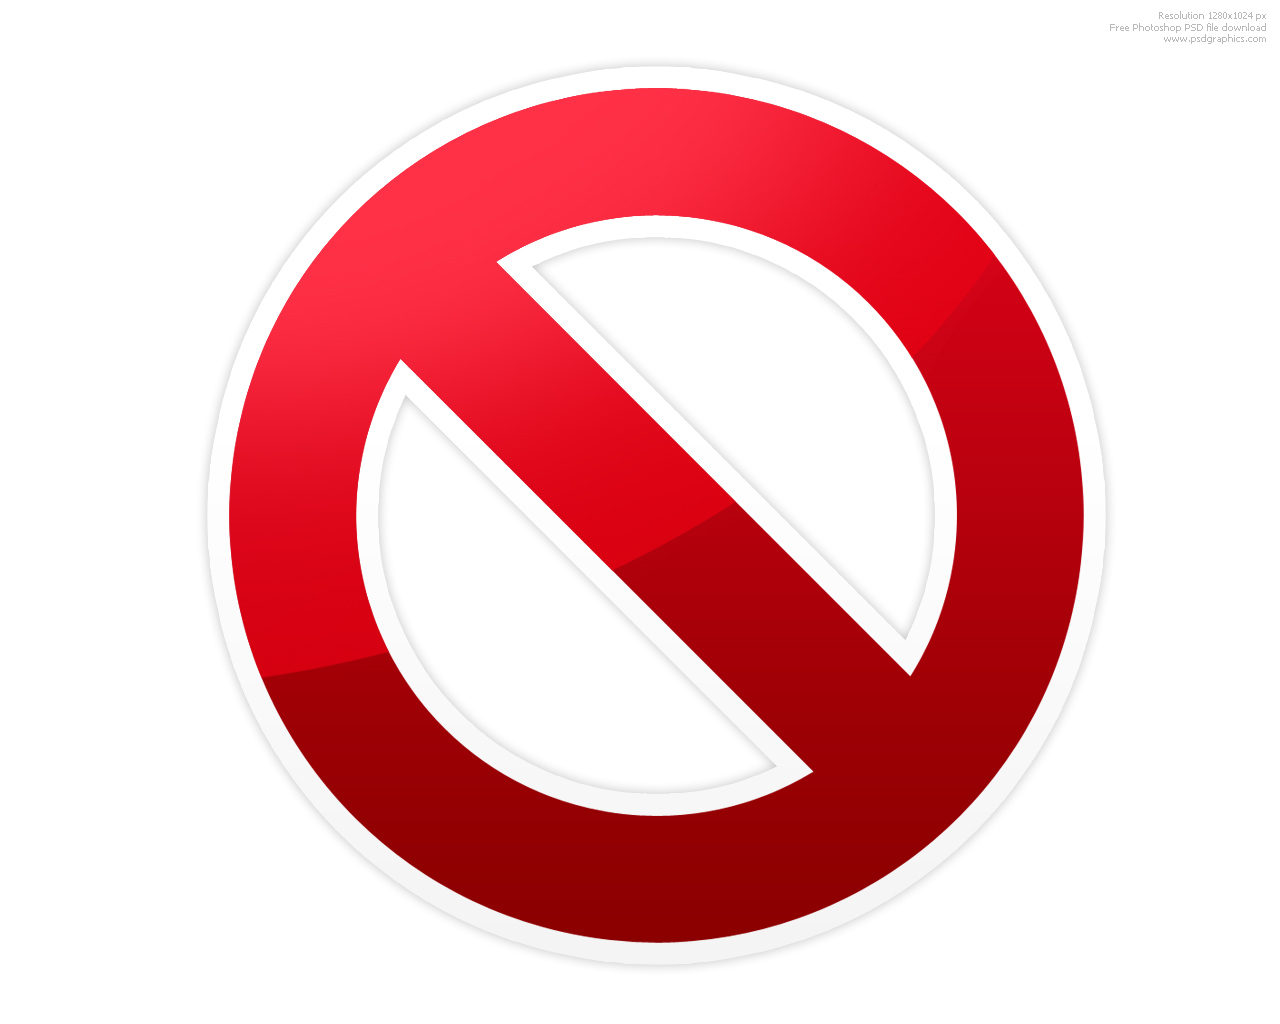 Stop clipart do not And Stop Symbol Psdgraphics Signs